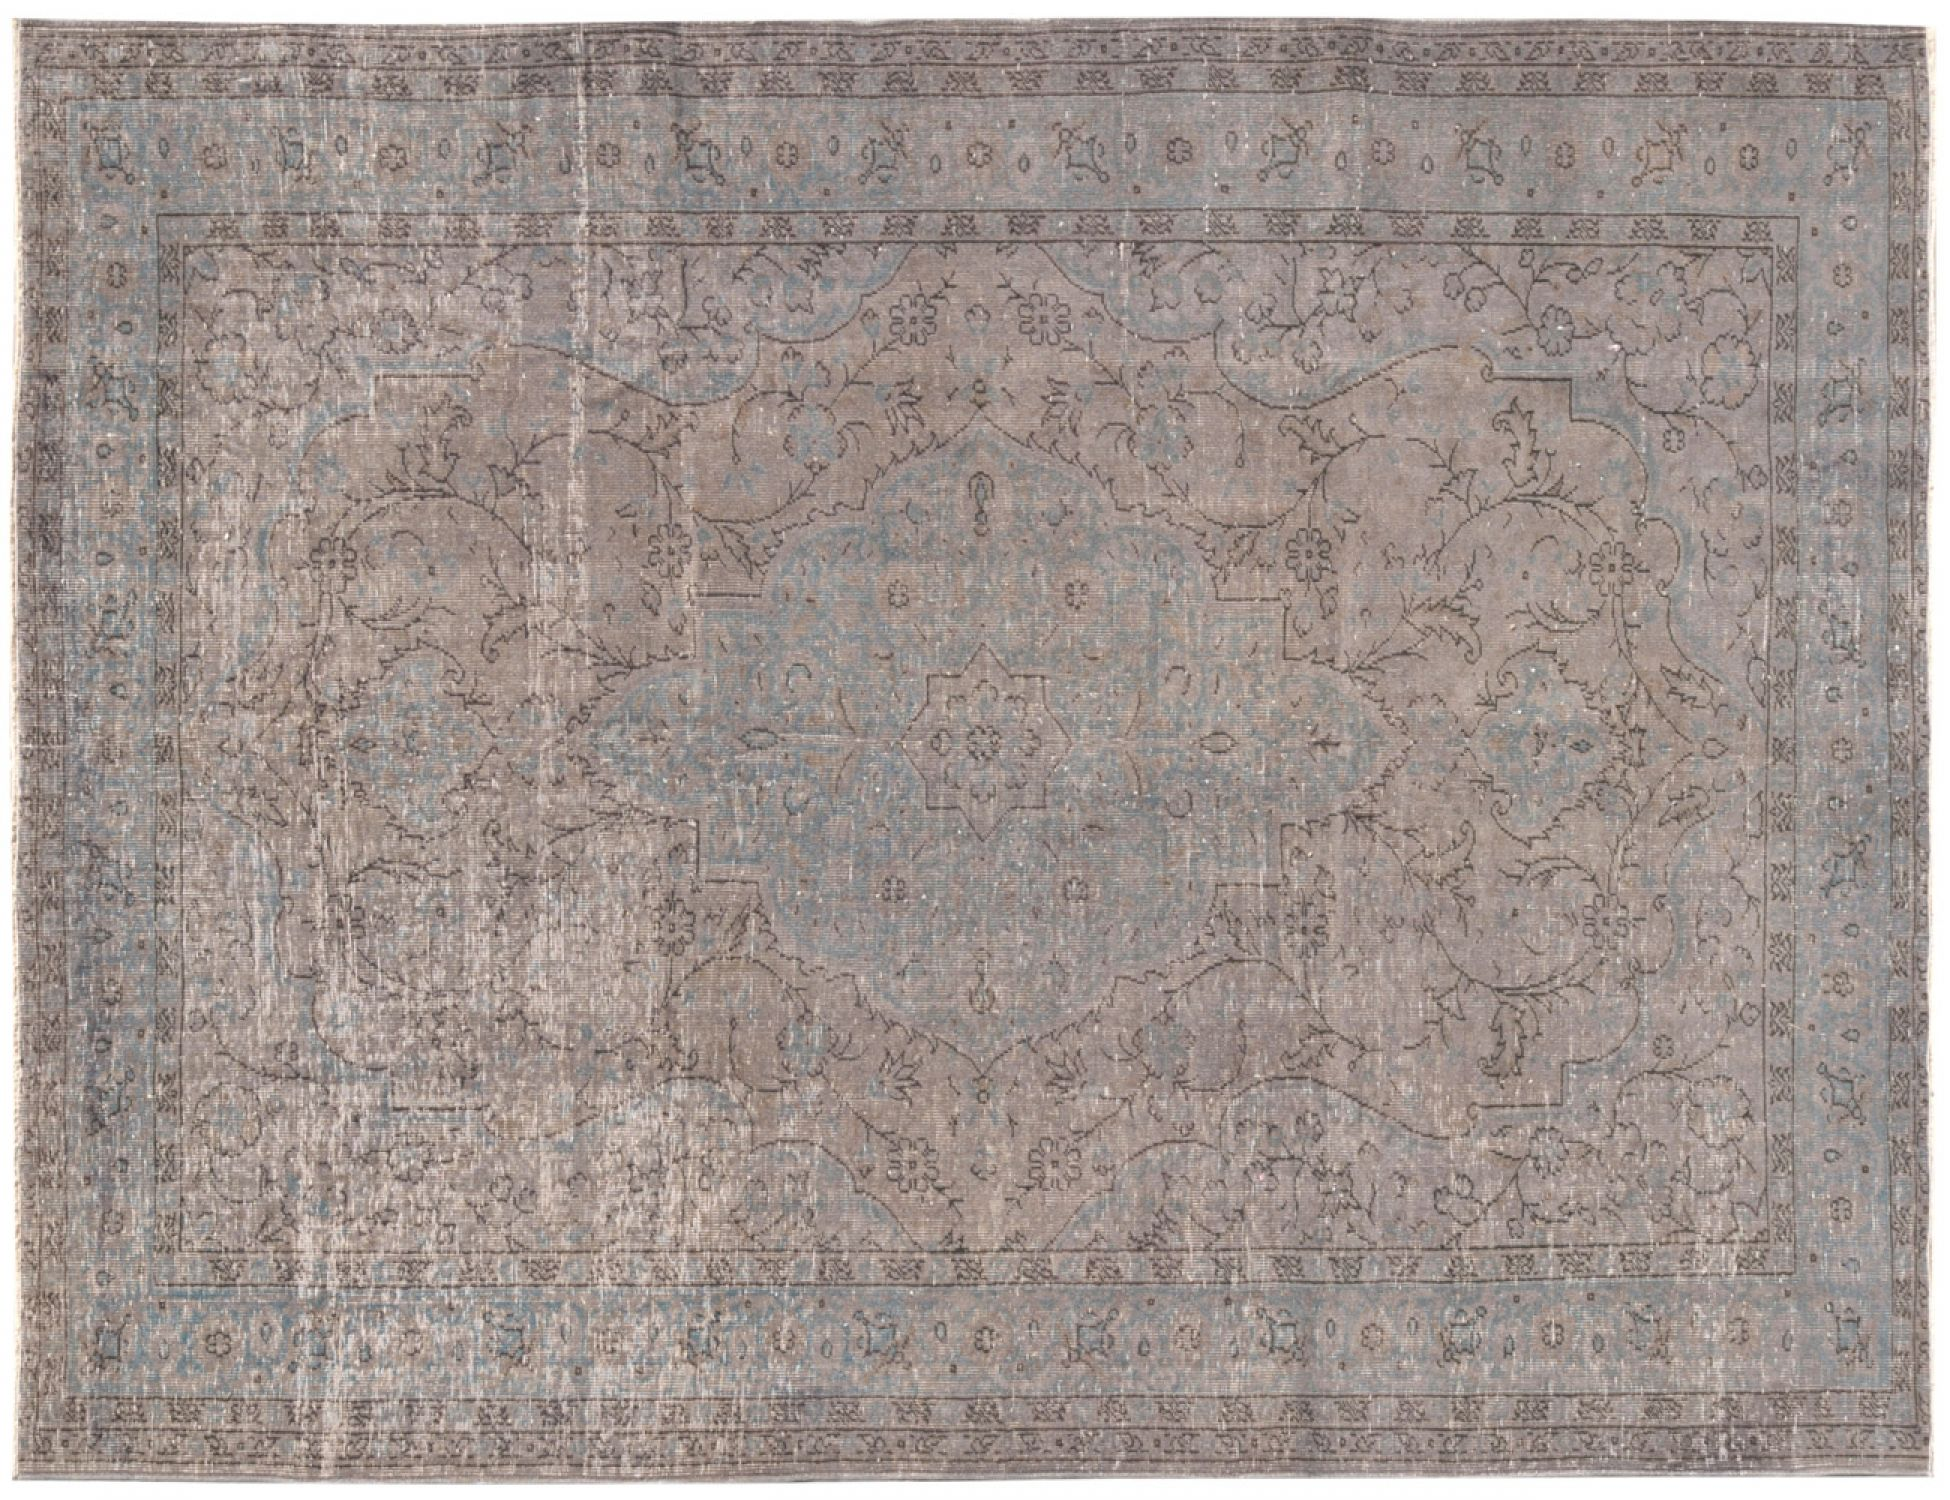 Vintage Carpet  grey <br/>283 x 204 cm